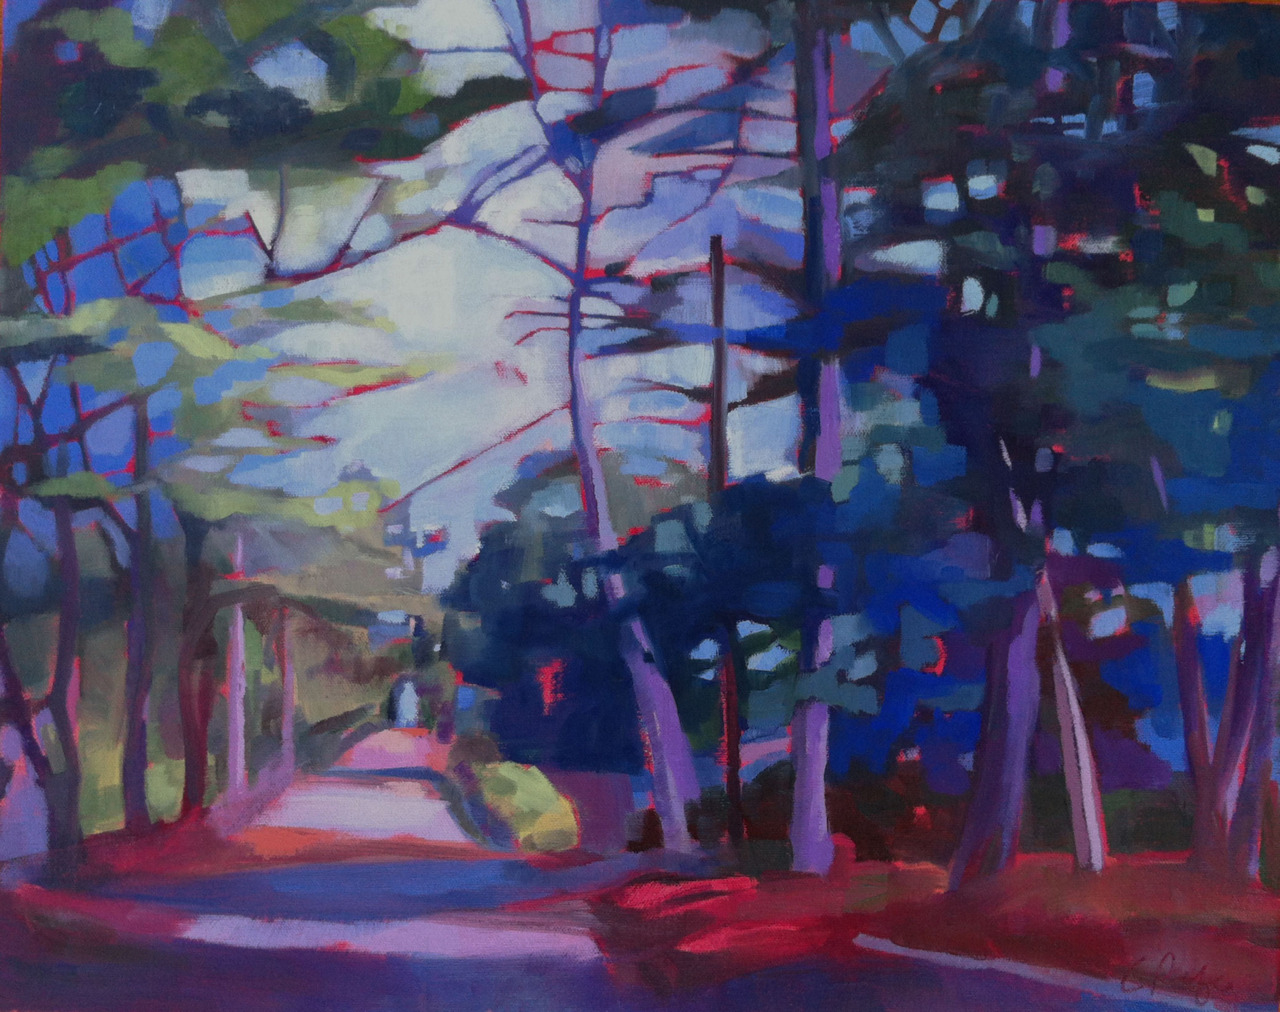 """Hot Path, Cool Night""  16"" x 20"" oil on canvas   March feels like August this year, reminding me of the heat that comes up off the road even as the sun goes down and the shade gets a bit cooler."